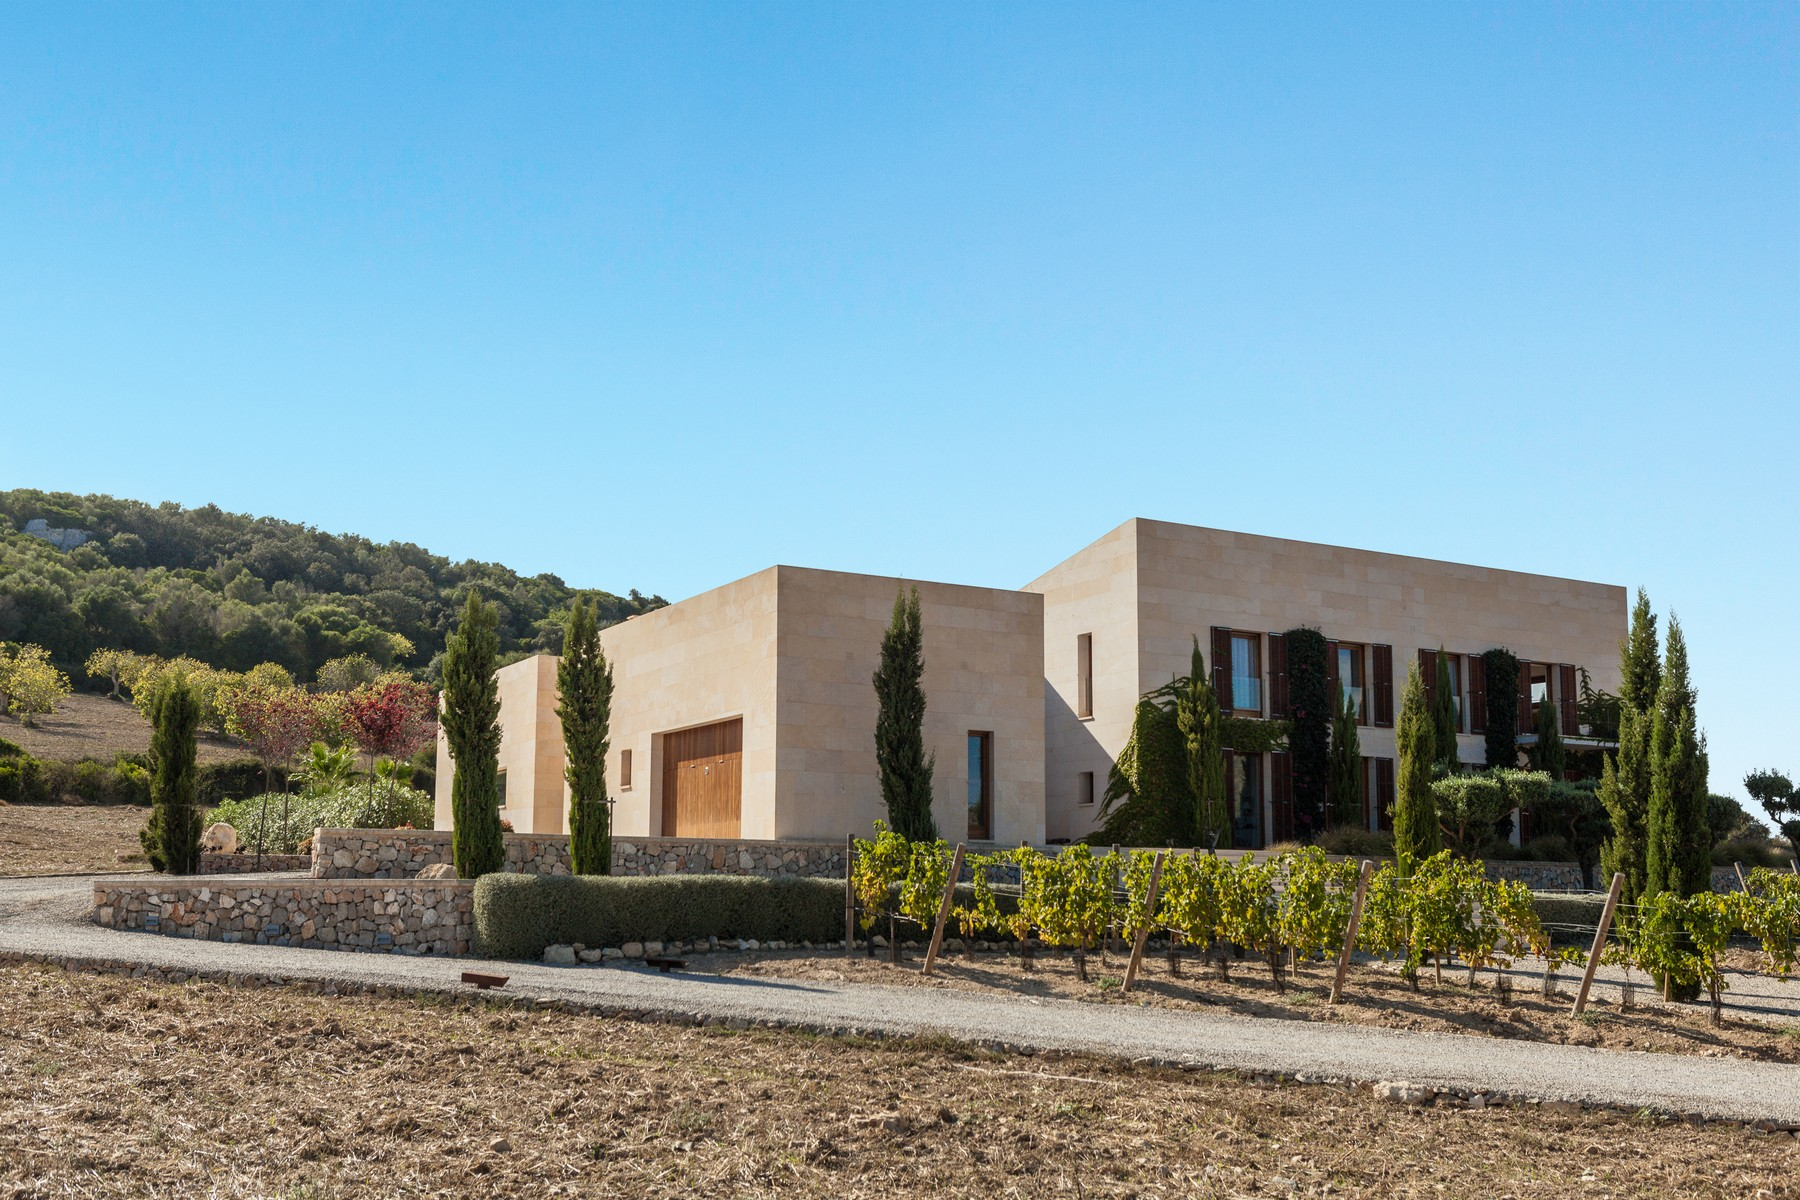 Single Family Home for Sale at Finca with incomparable style Manacor, Mallorca, 07530 Spain